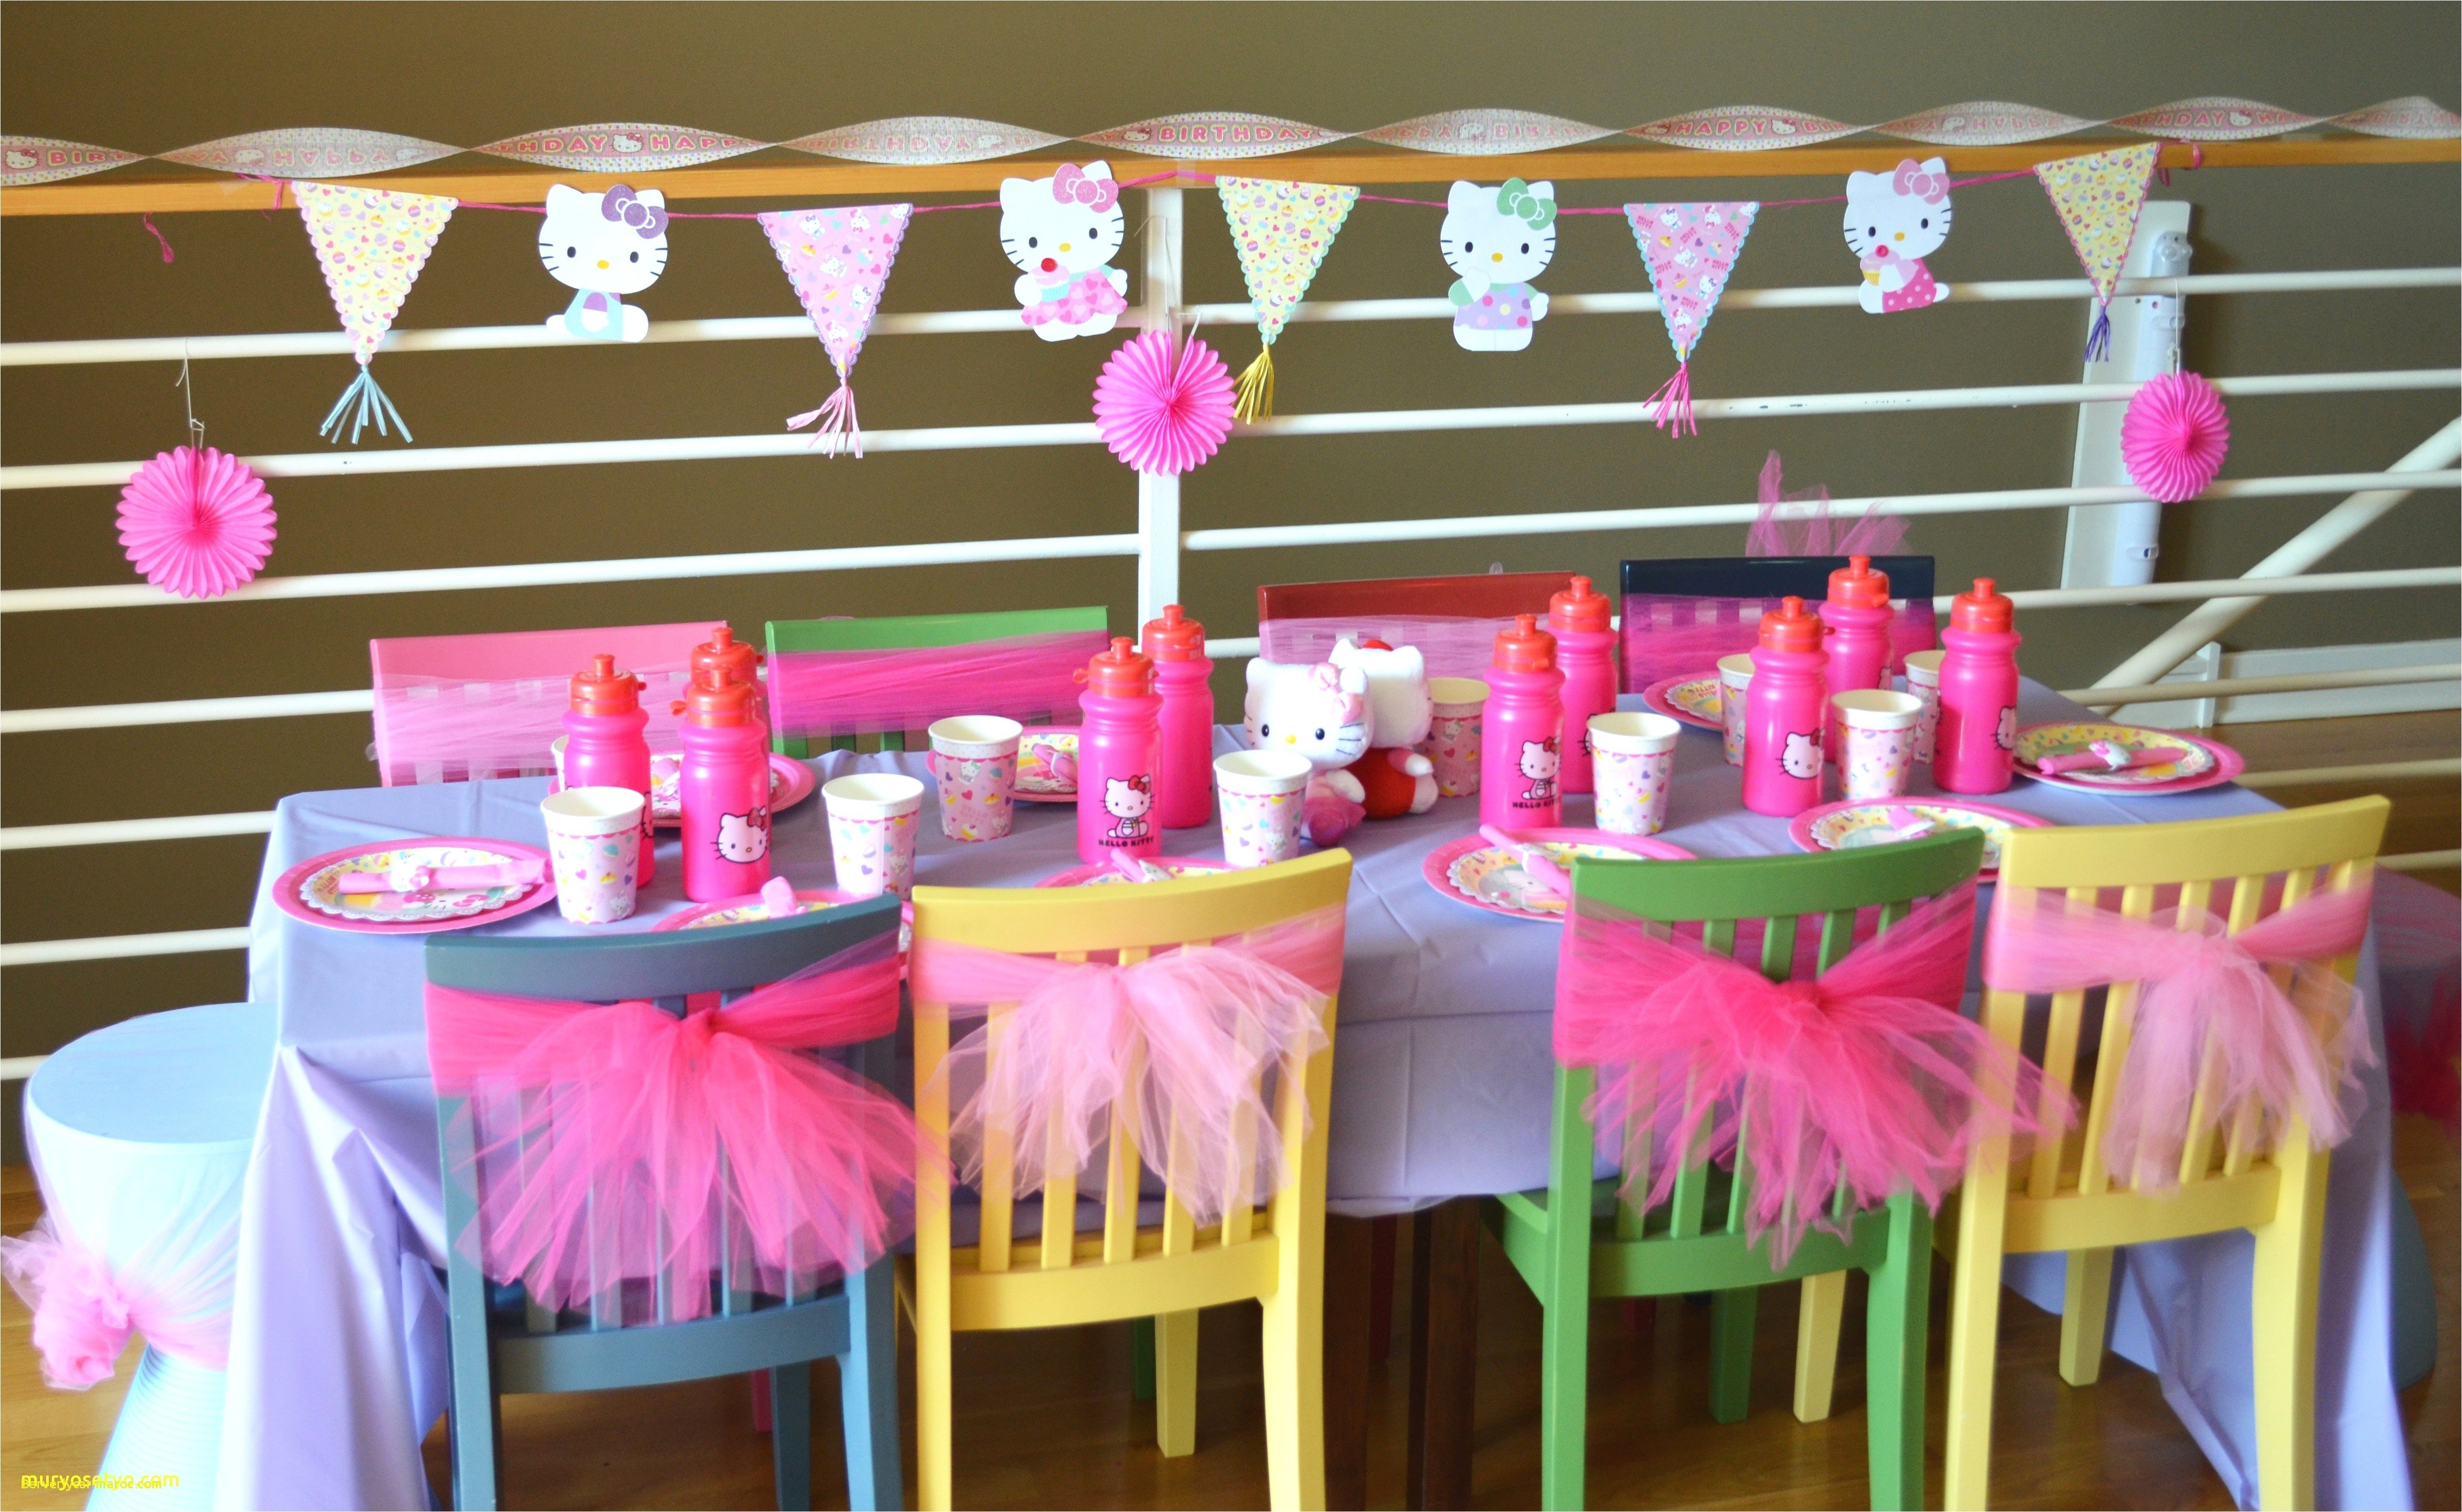 10 Best Birthday Party Ideas For 2 Year Old crafts ideas 2 year old unique best craft for 2 year old birthday 3